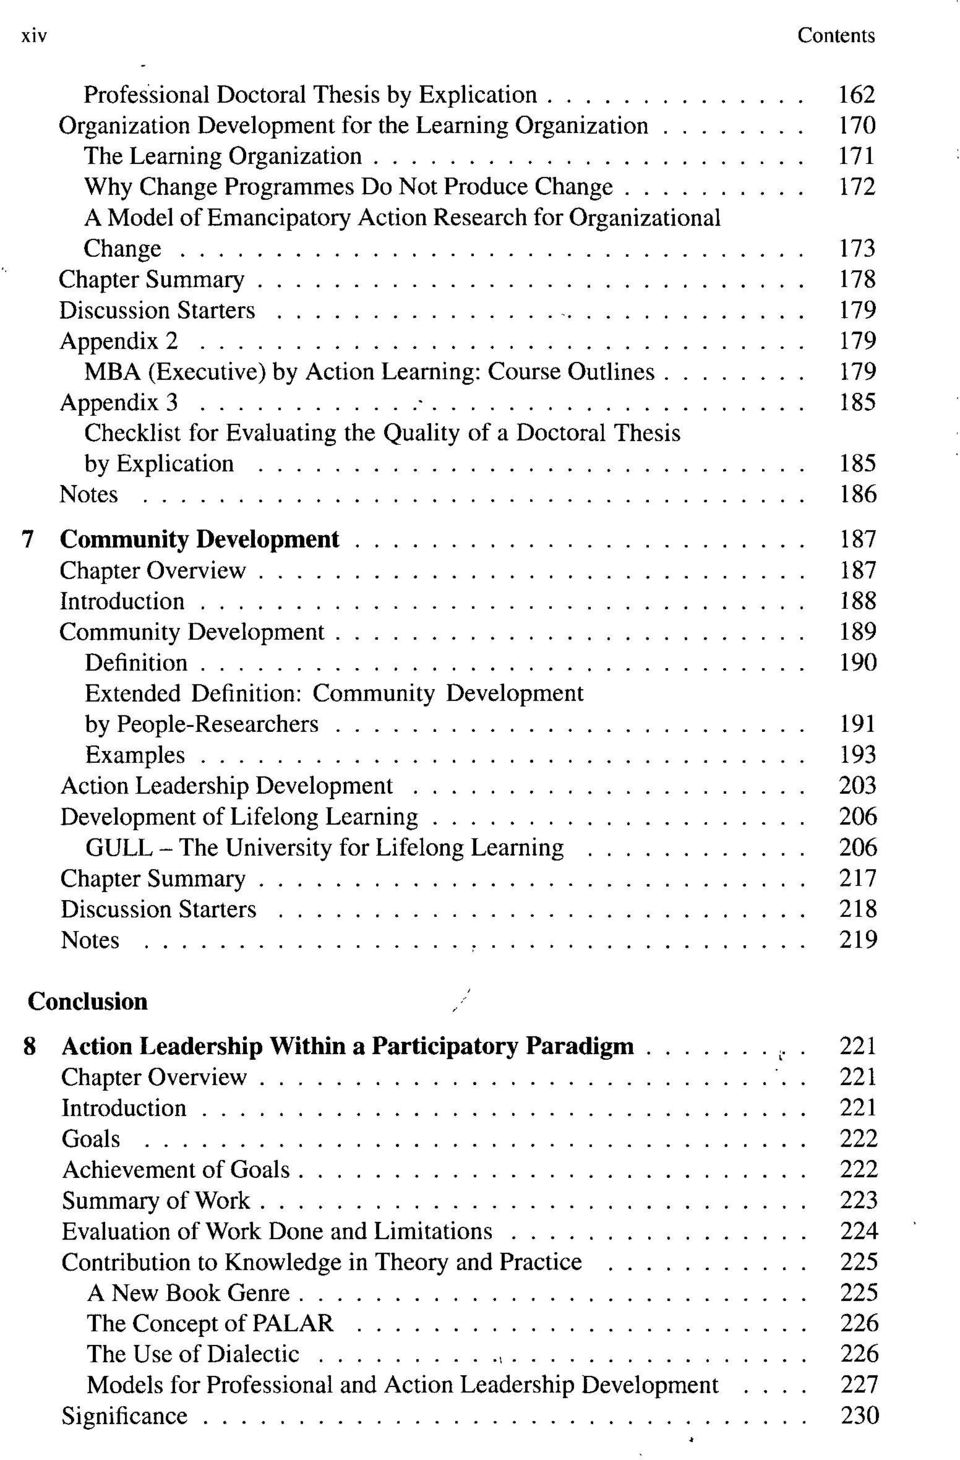 Checklist for Evaluating the Quality of a Doctoral Thesis by Explication 185 Notes 186 7 Community Development 187 Chapter Overview 187 Introduction 188 Community Development 189 Definition 190